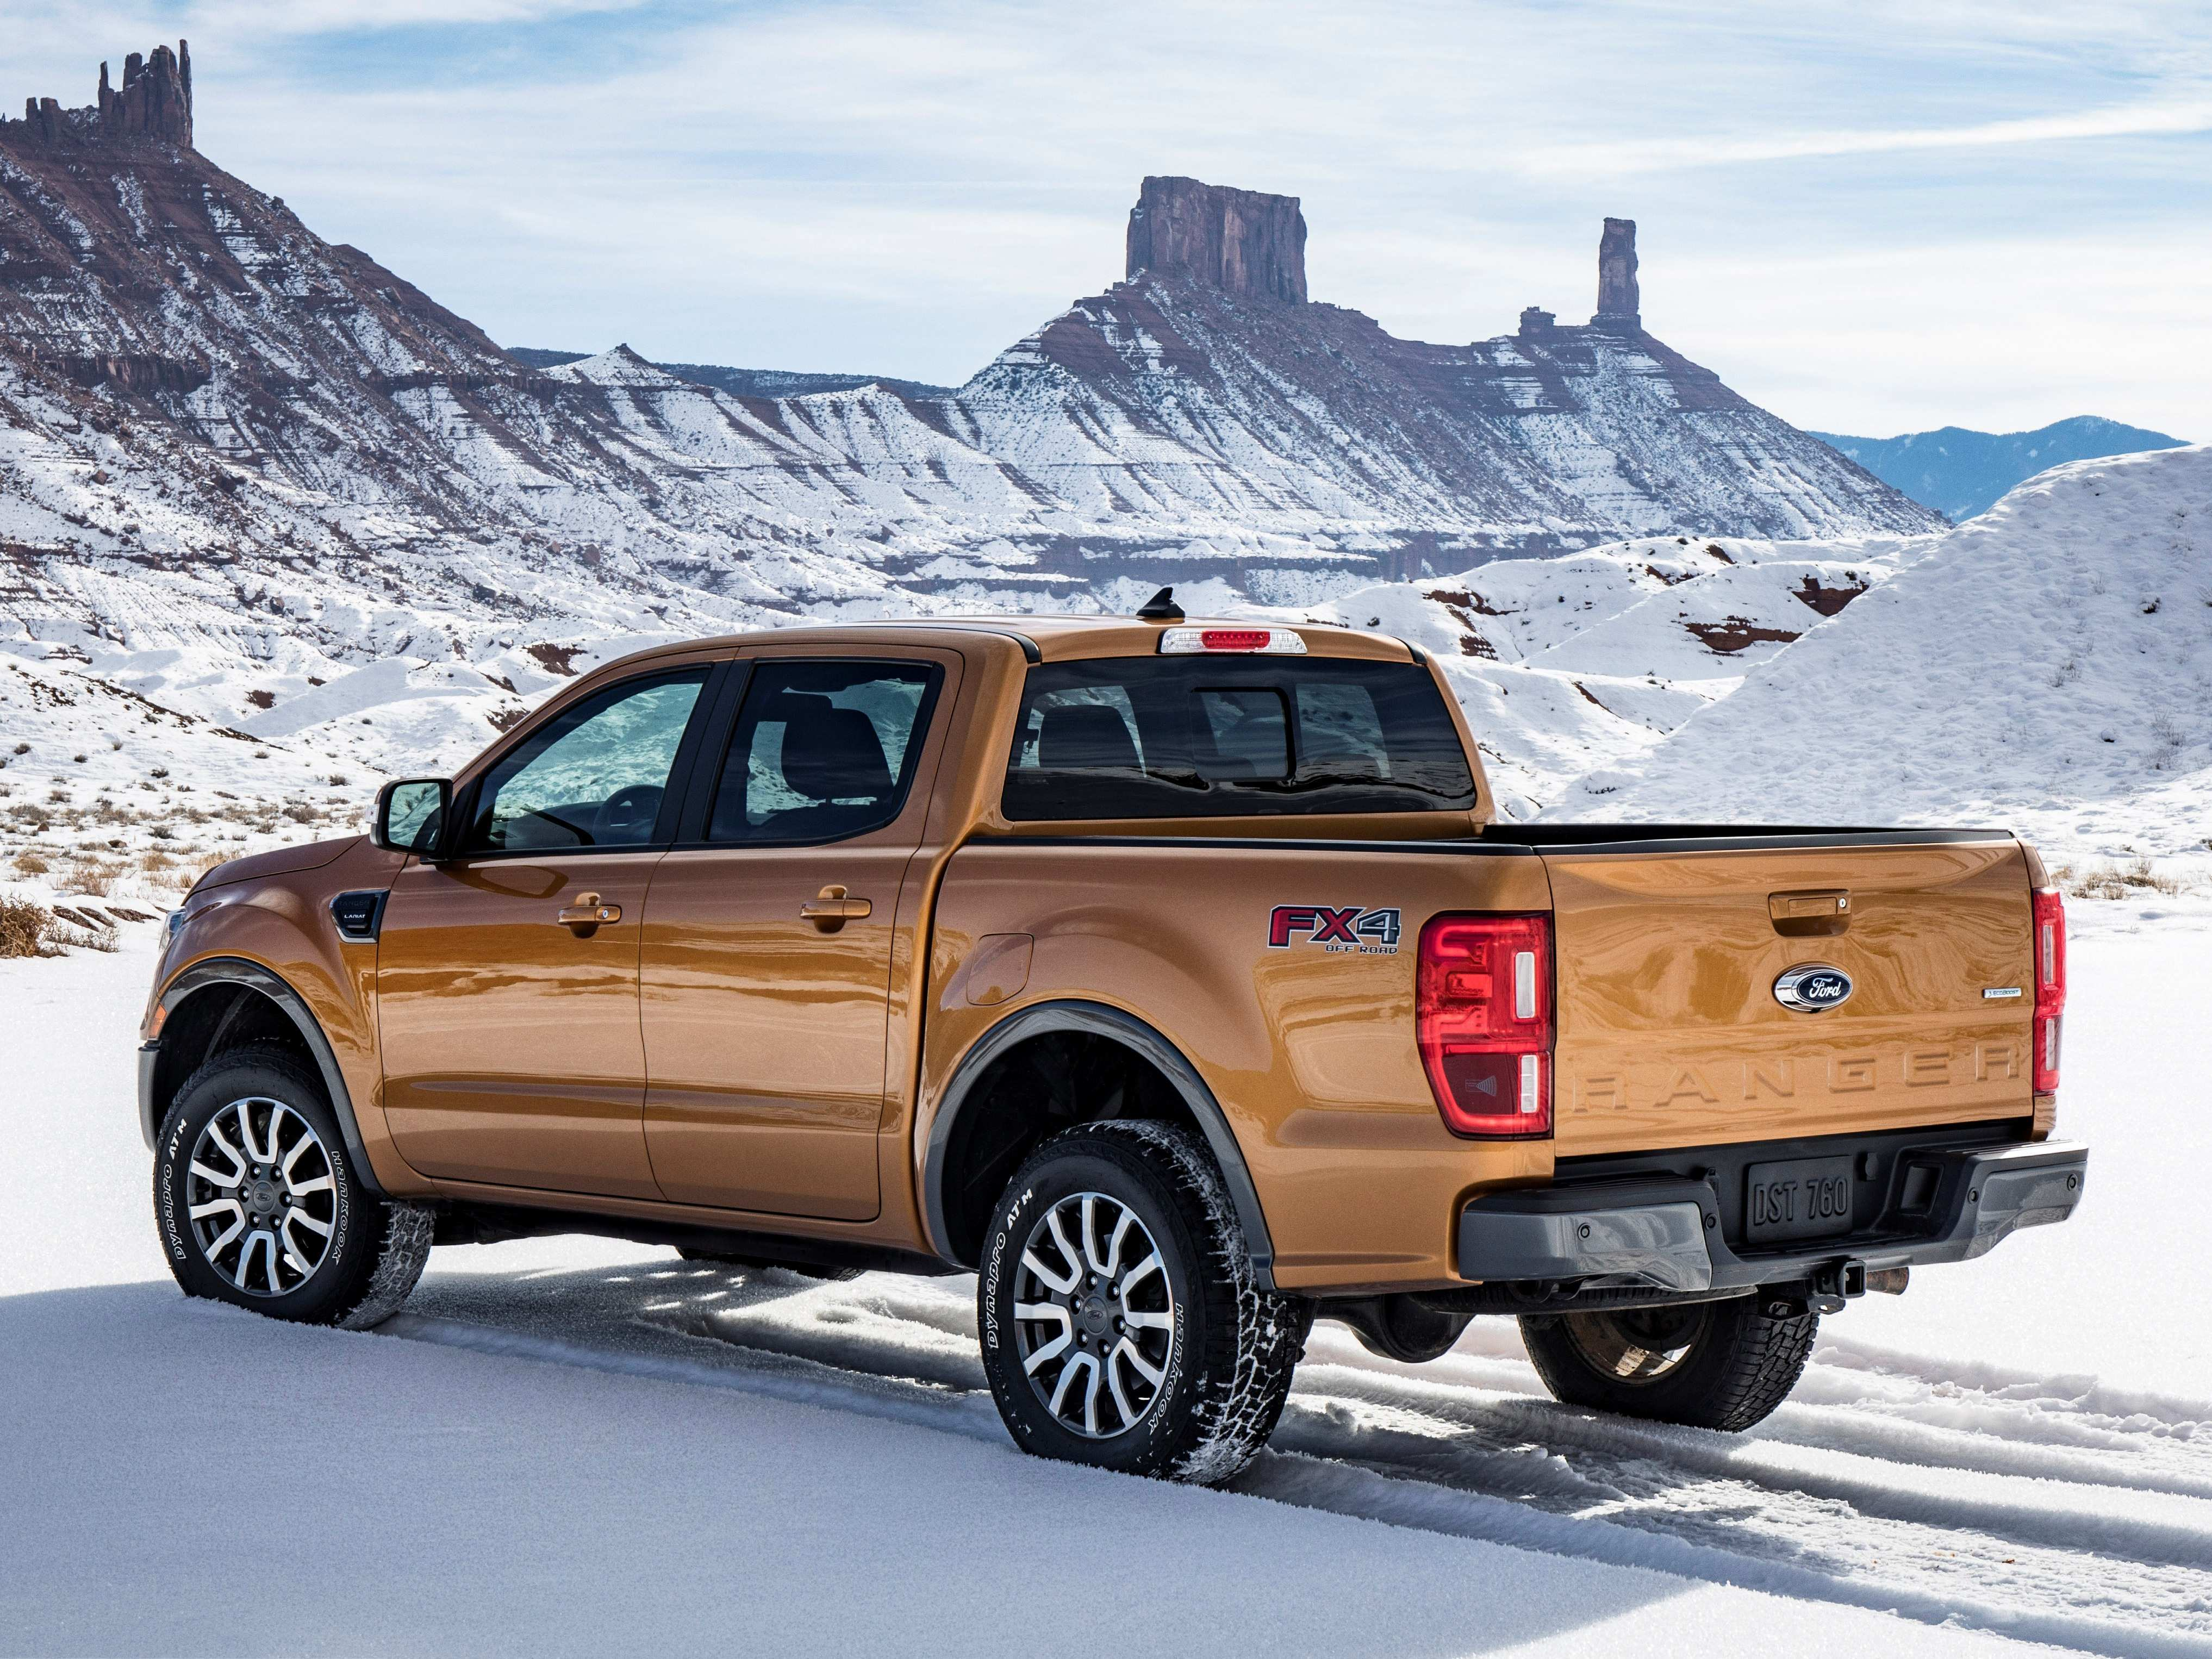 85 The 2019 Ford Ranger Images New Review with 2019 Ford Ranger Images